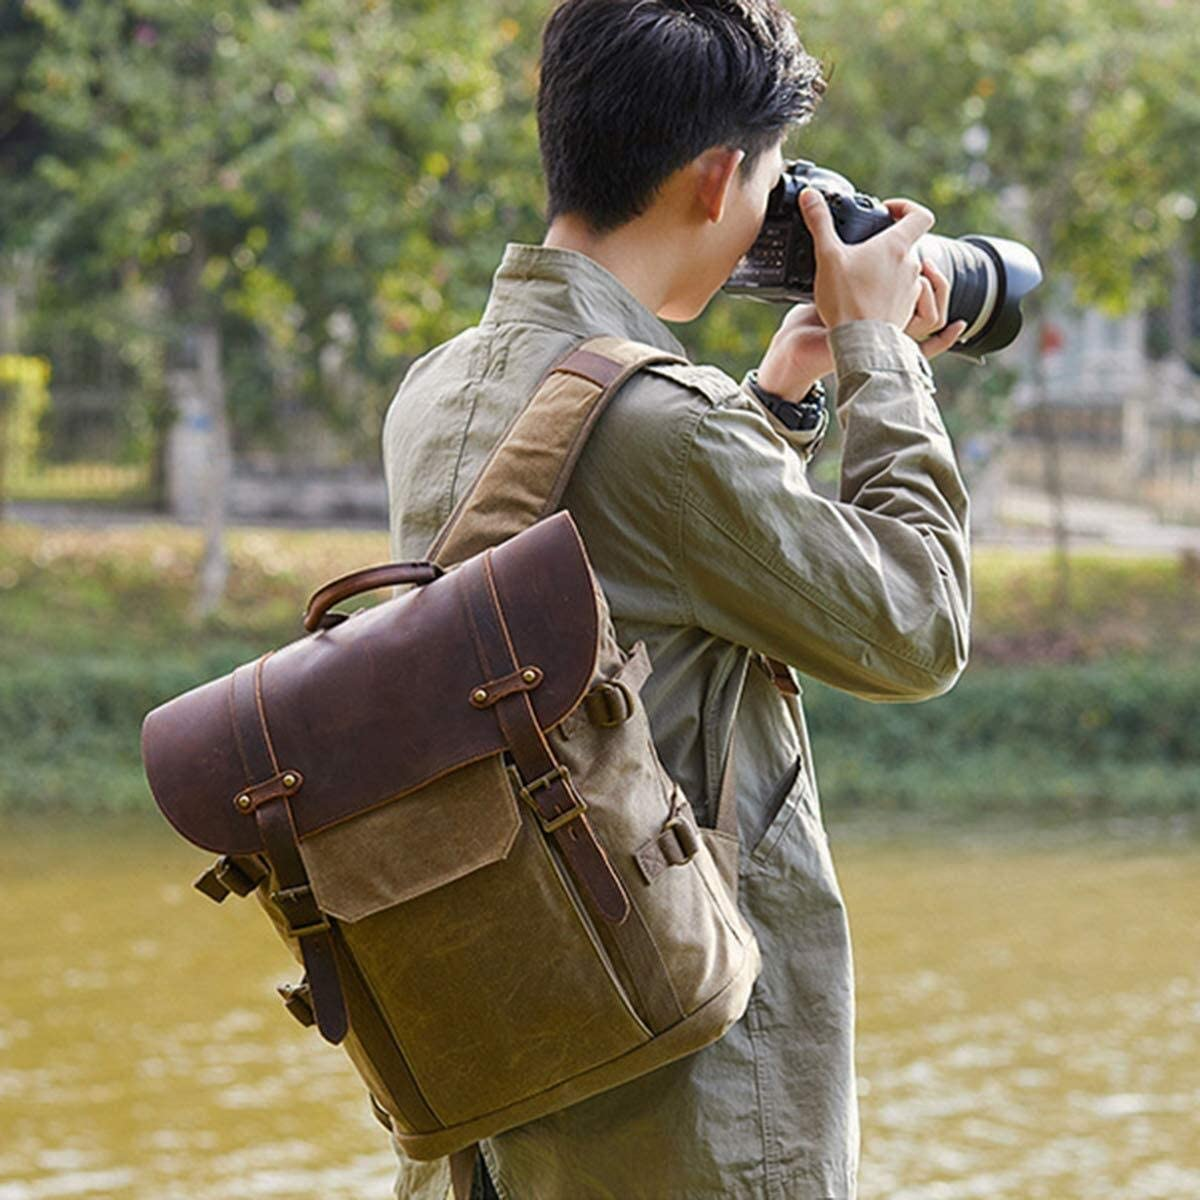 Nuanxingjiafang Digital SLR Camera Backpack Photo Leisure Travel Bag Batik Canvas Camera Backpack Laptop Tripod Lens //30 X 18 X 40 cm Military Green Well-Made